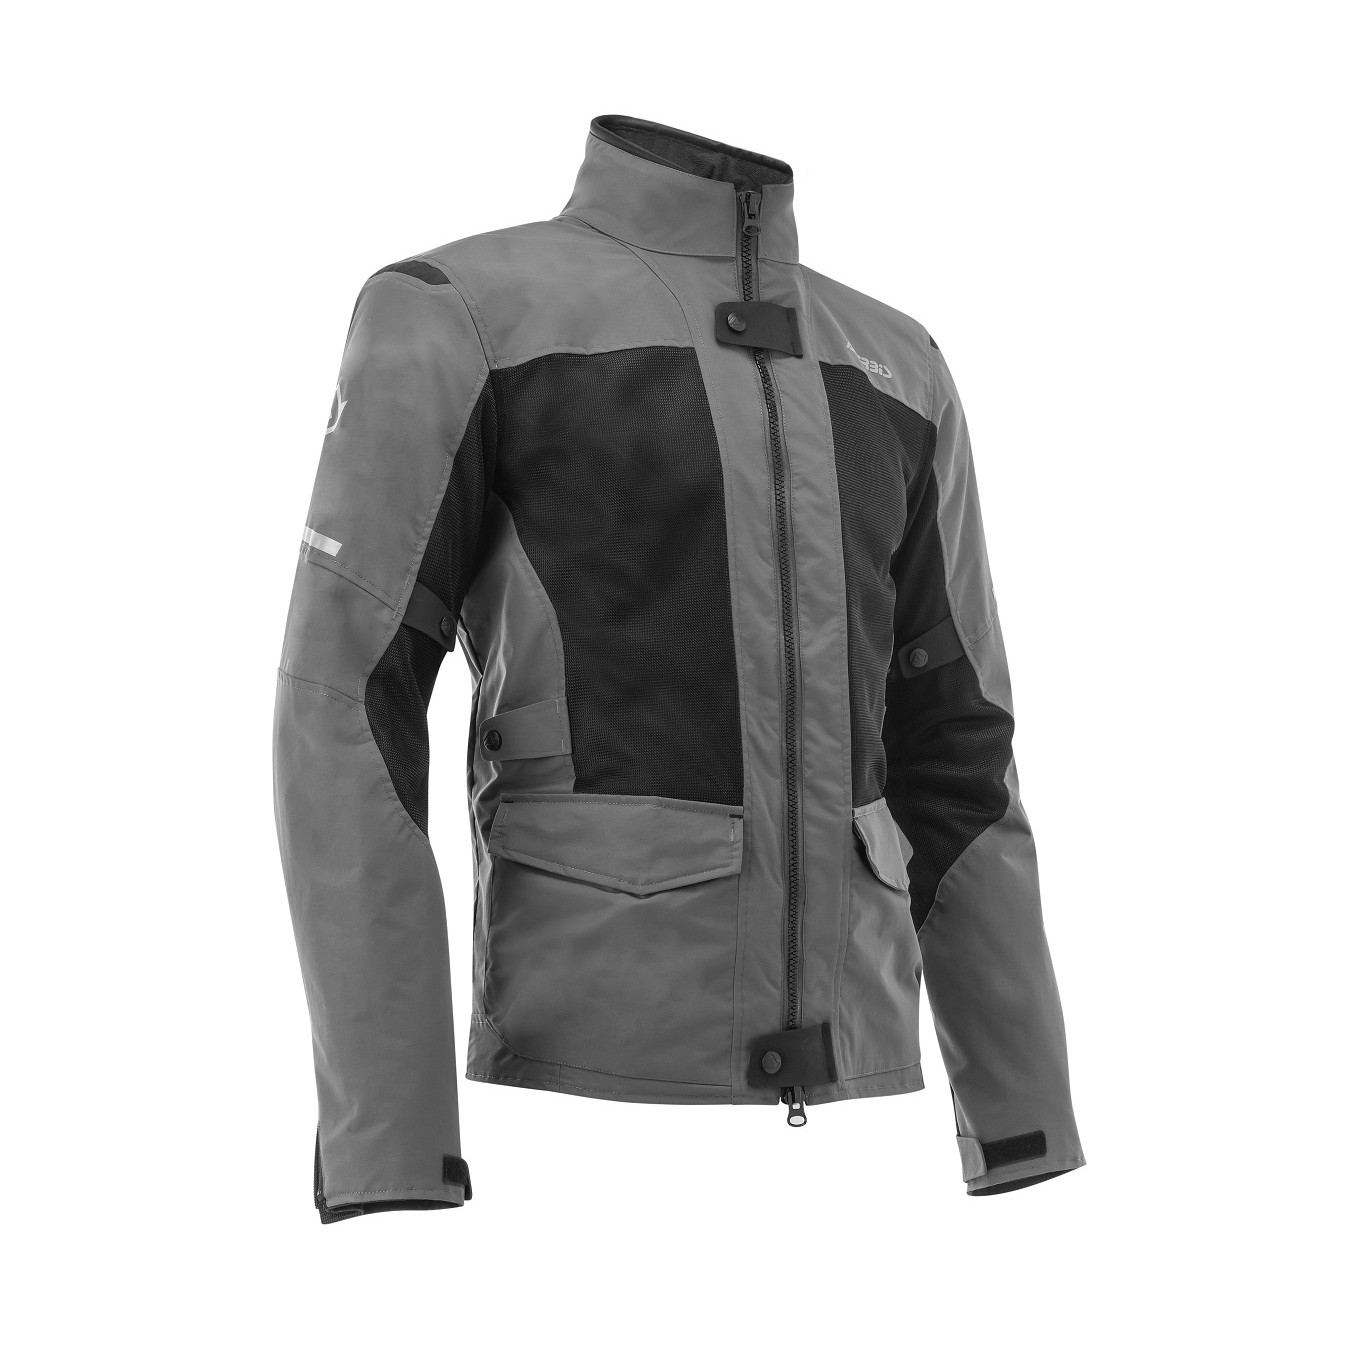 ACERBIS - RAMSEY MY VENTED 2.0 LONG JACKET - BLACK GREY